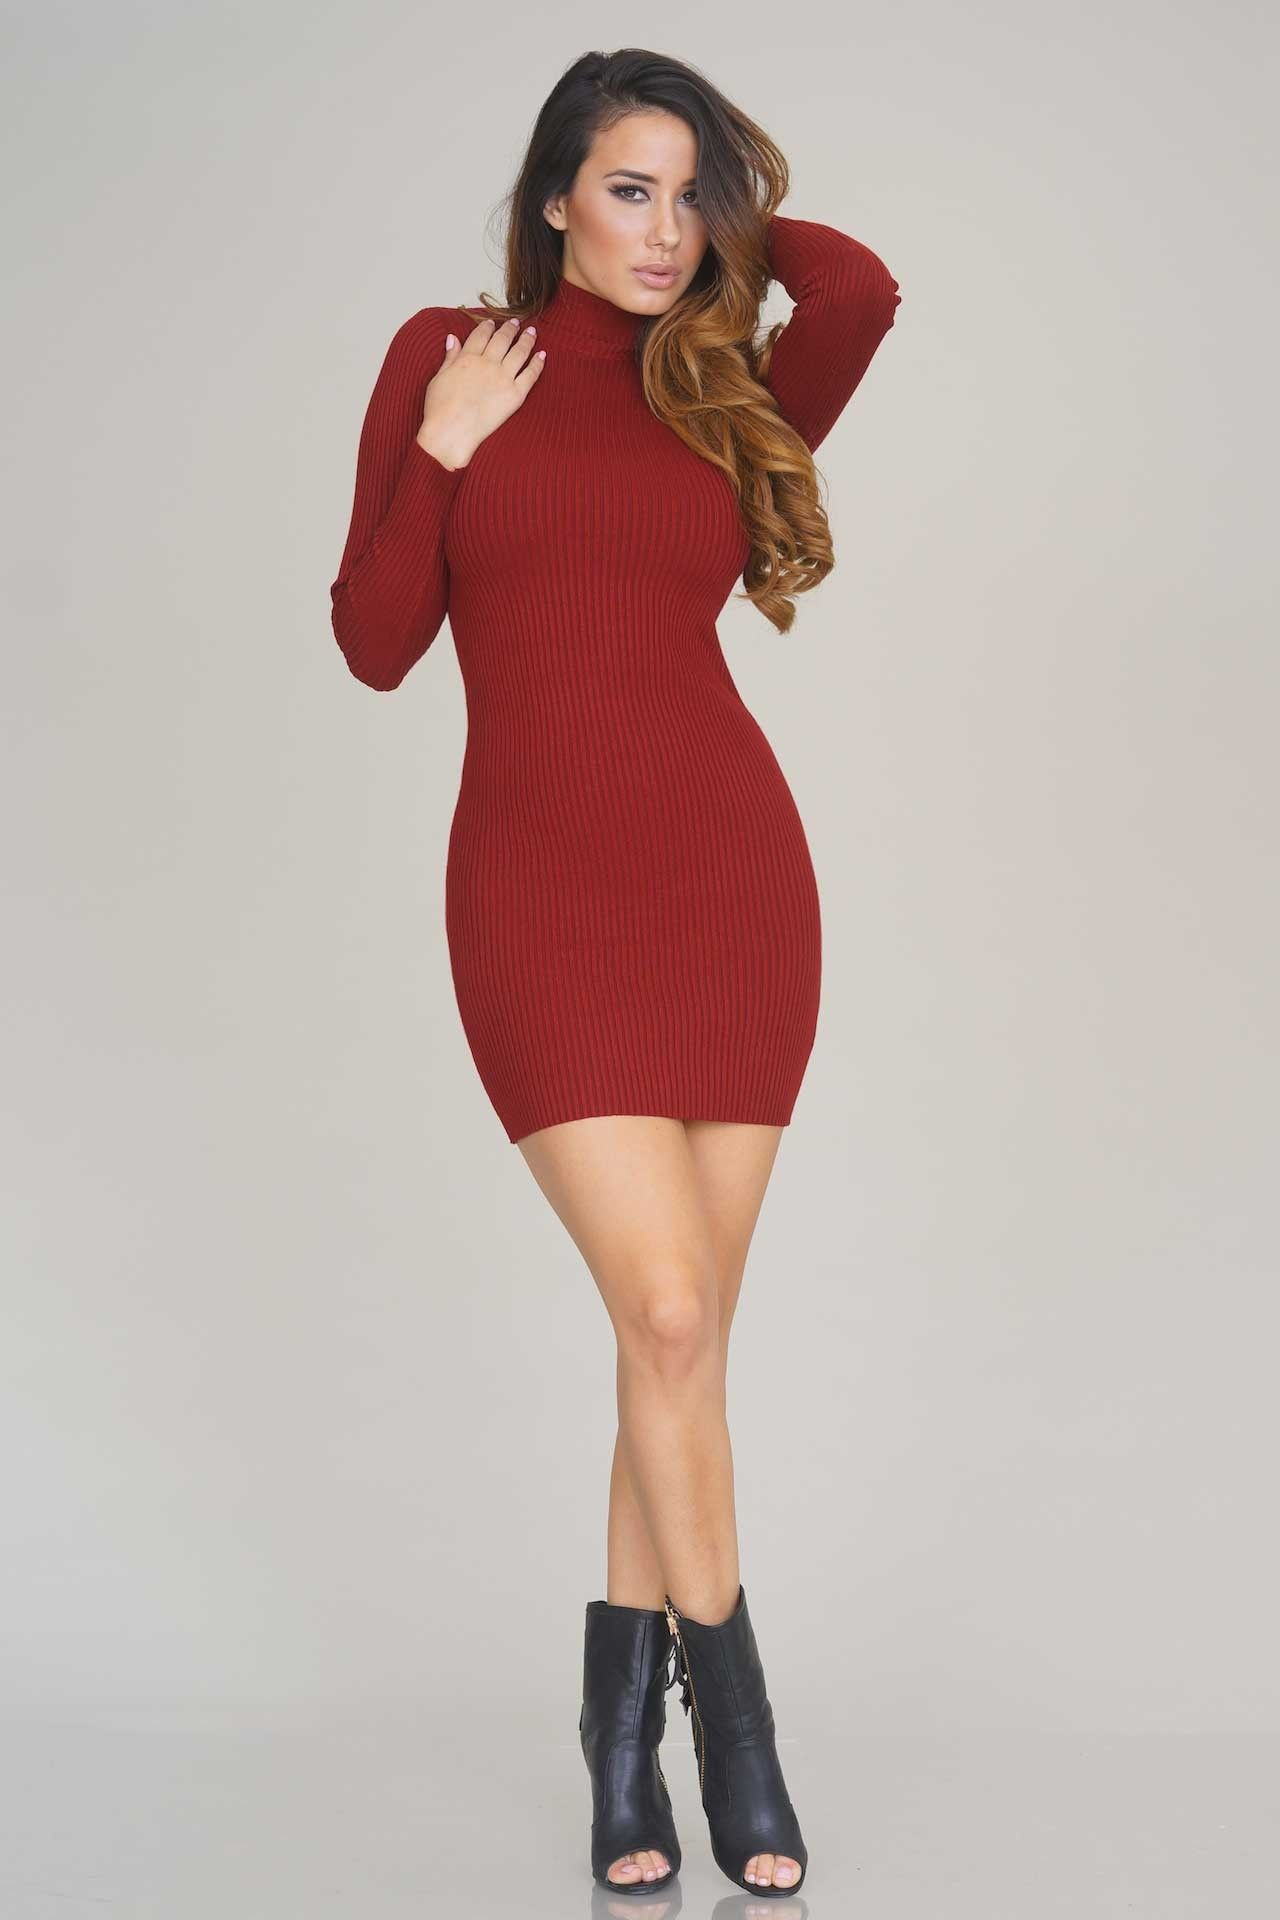 Red Turtleneck Dress | Red Dresses 2016